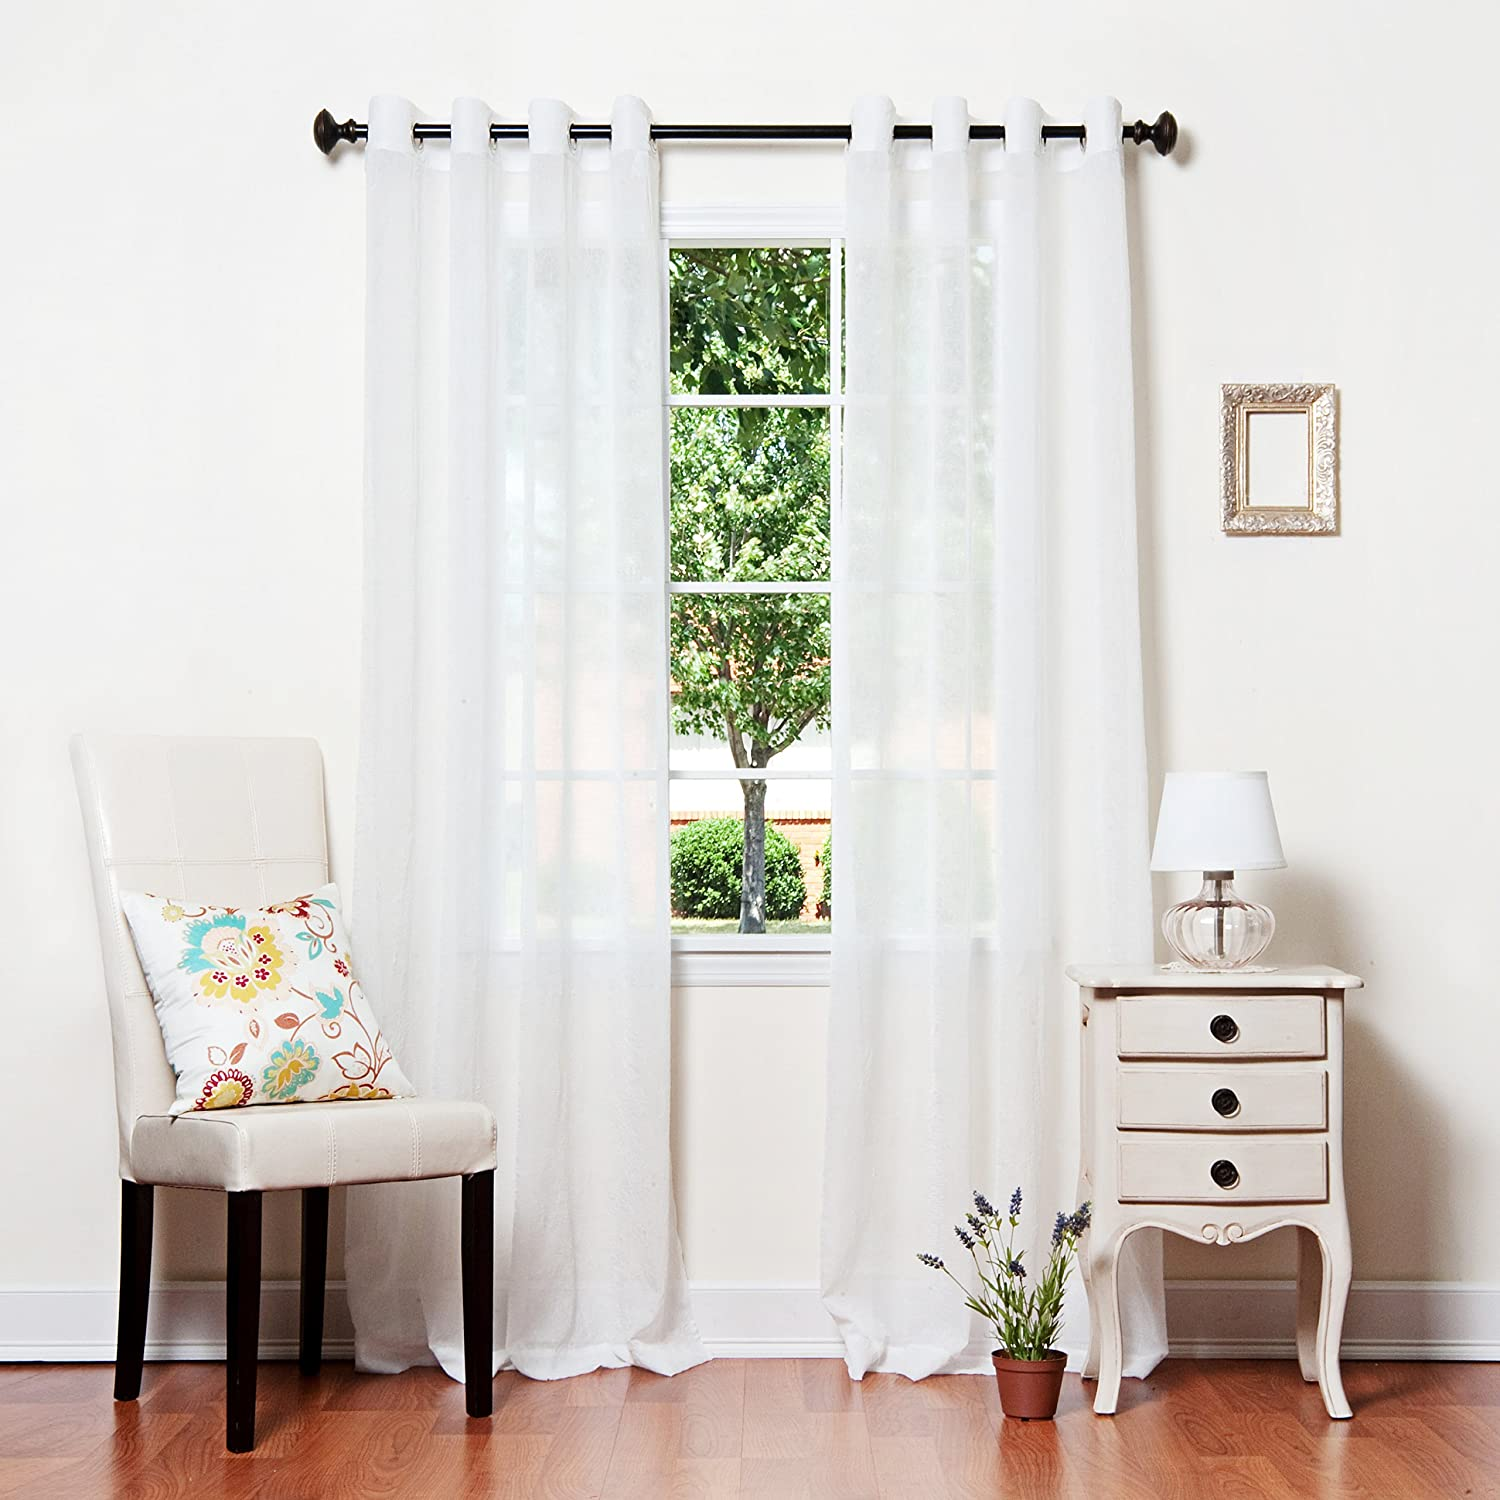 Amazon.com: Non Blackout Curtains: Home & Kitchen